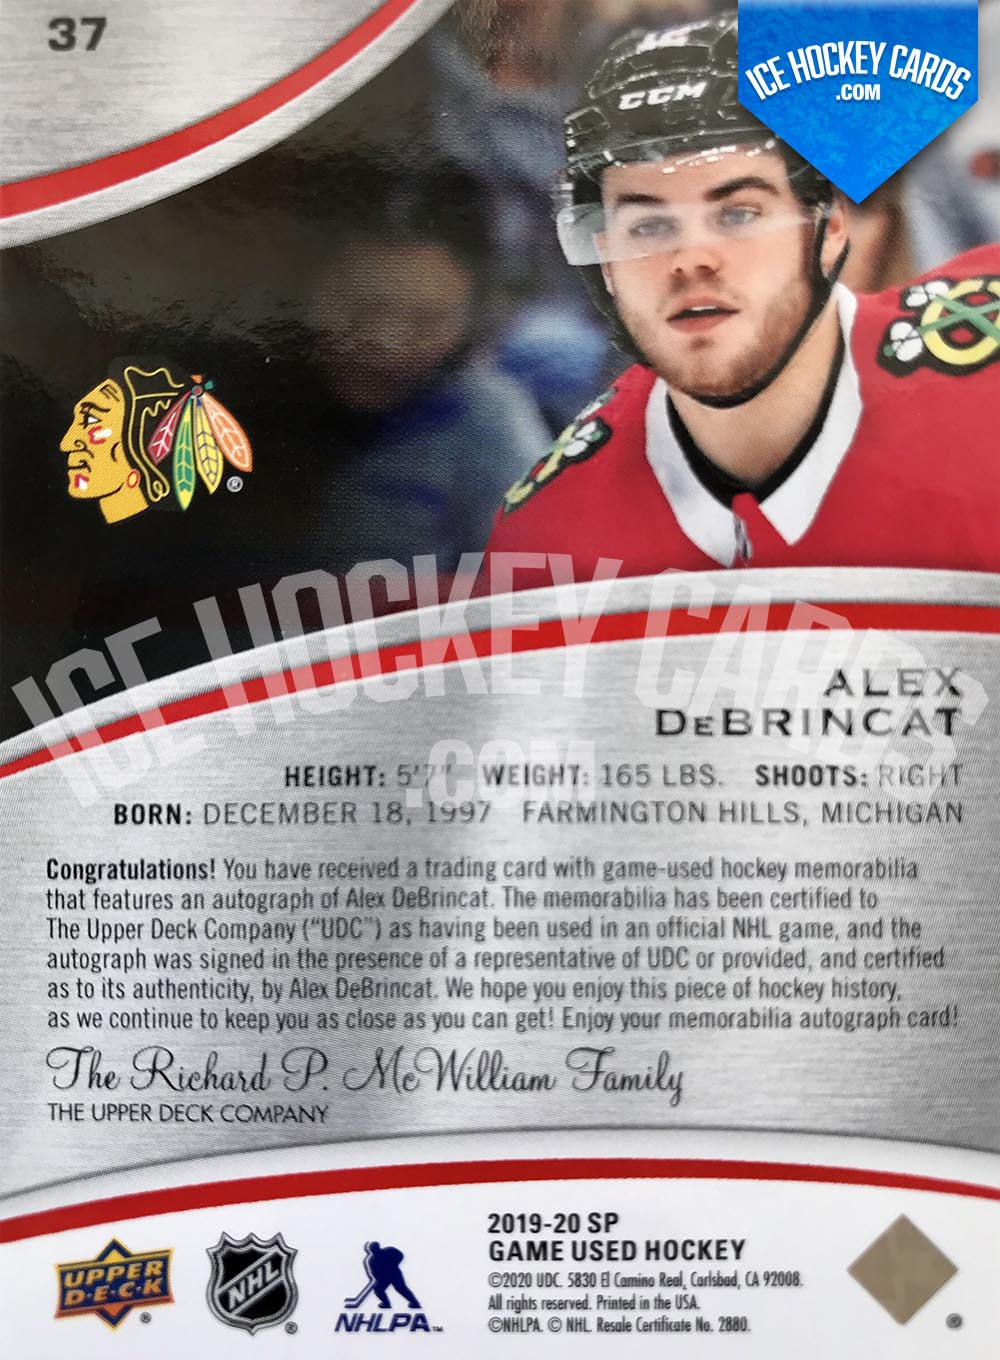 Upper Deck - SP Game Used 2019-20 - Alex DeBrincat Premium Auto Patch # to 15 RARE back